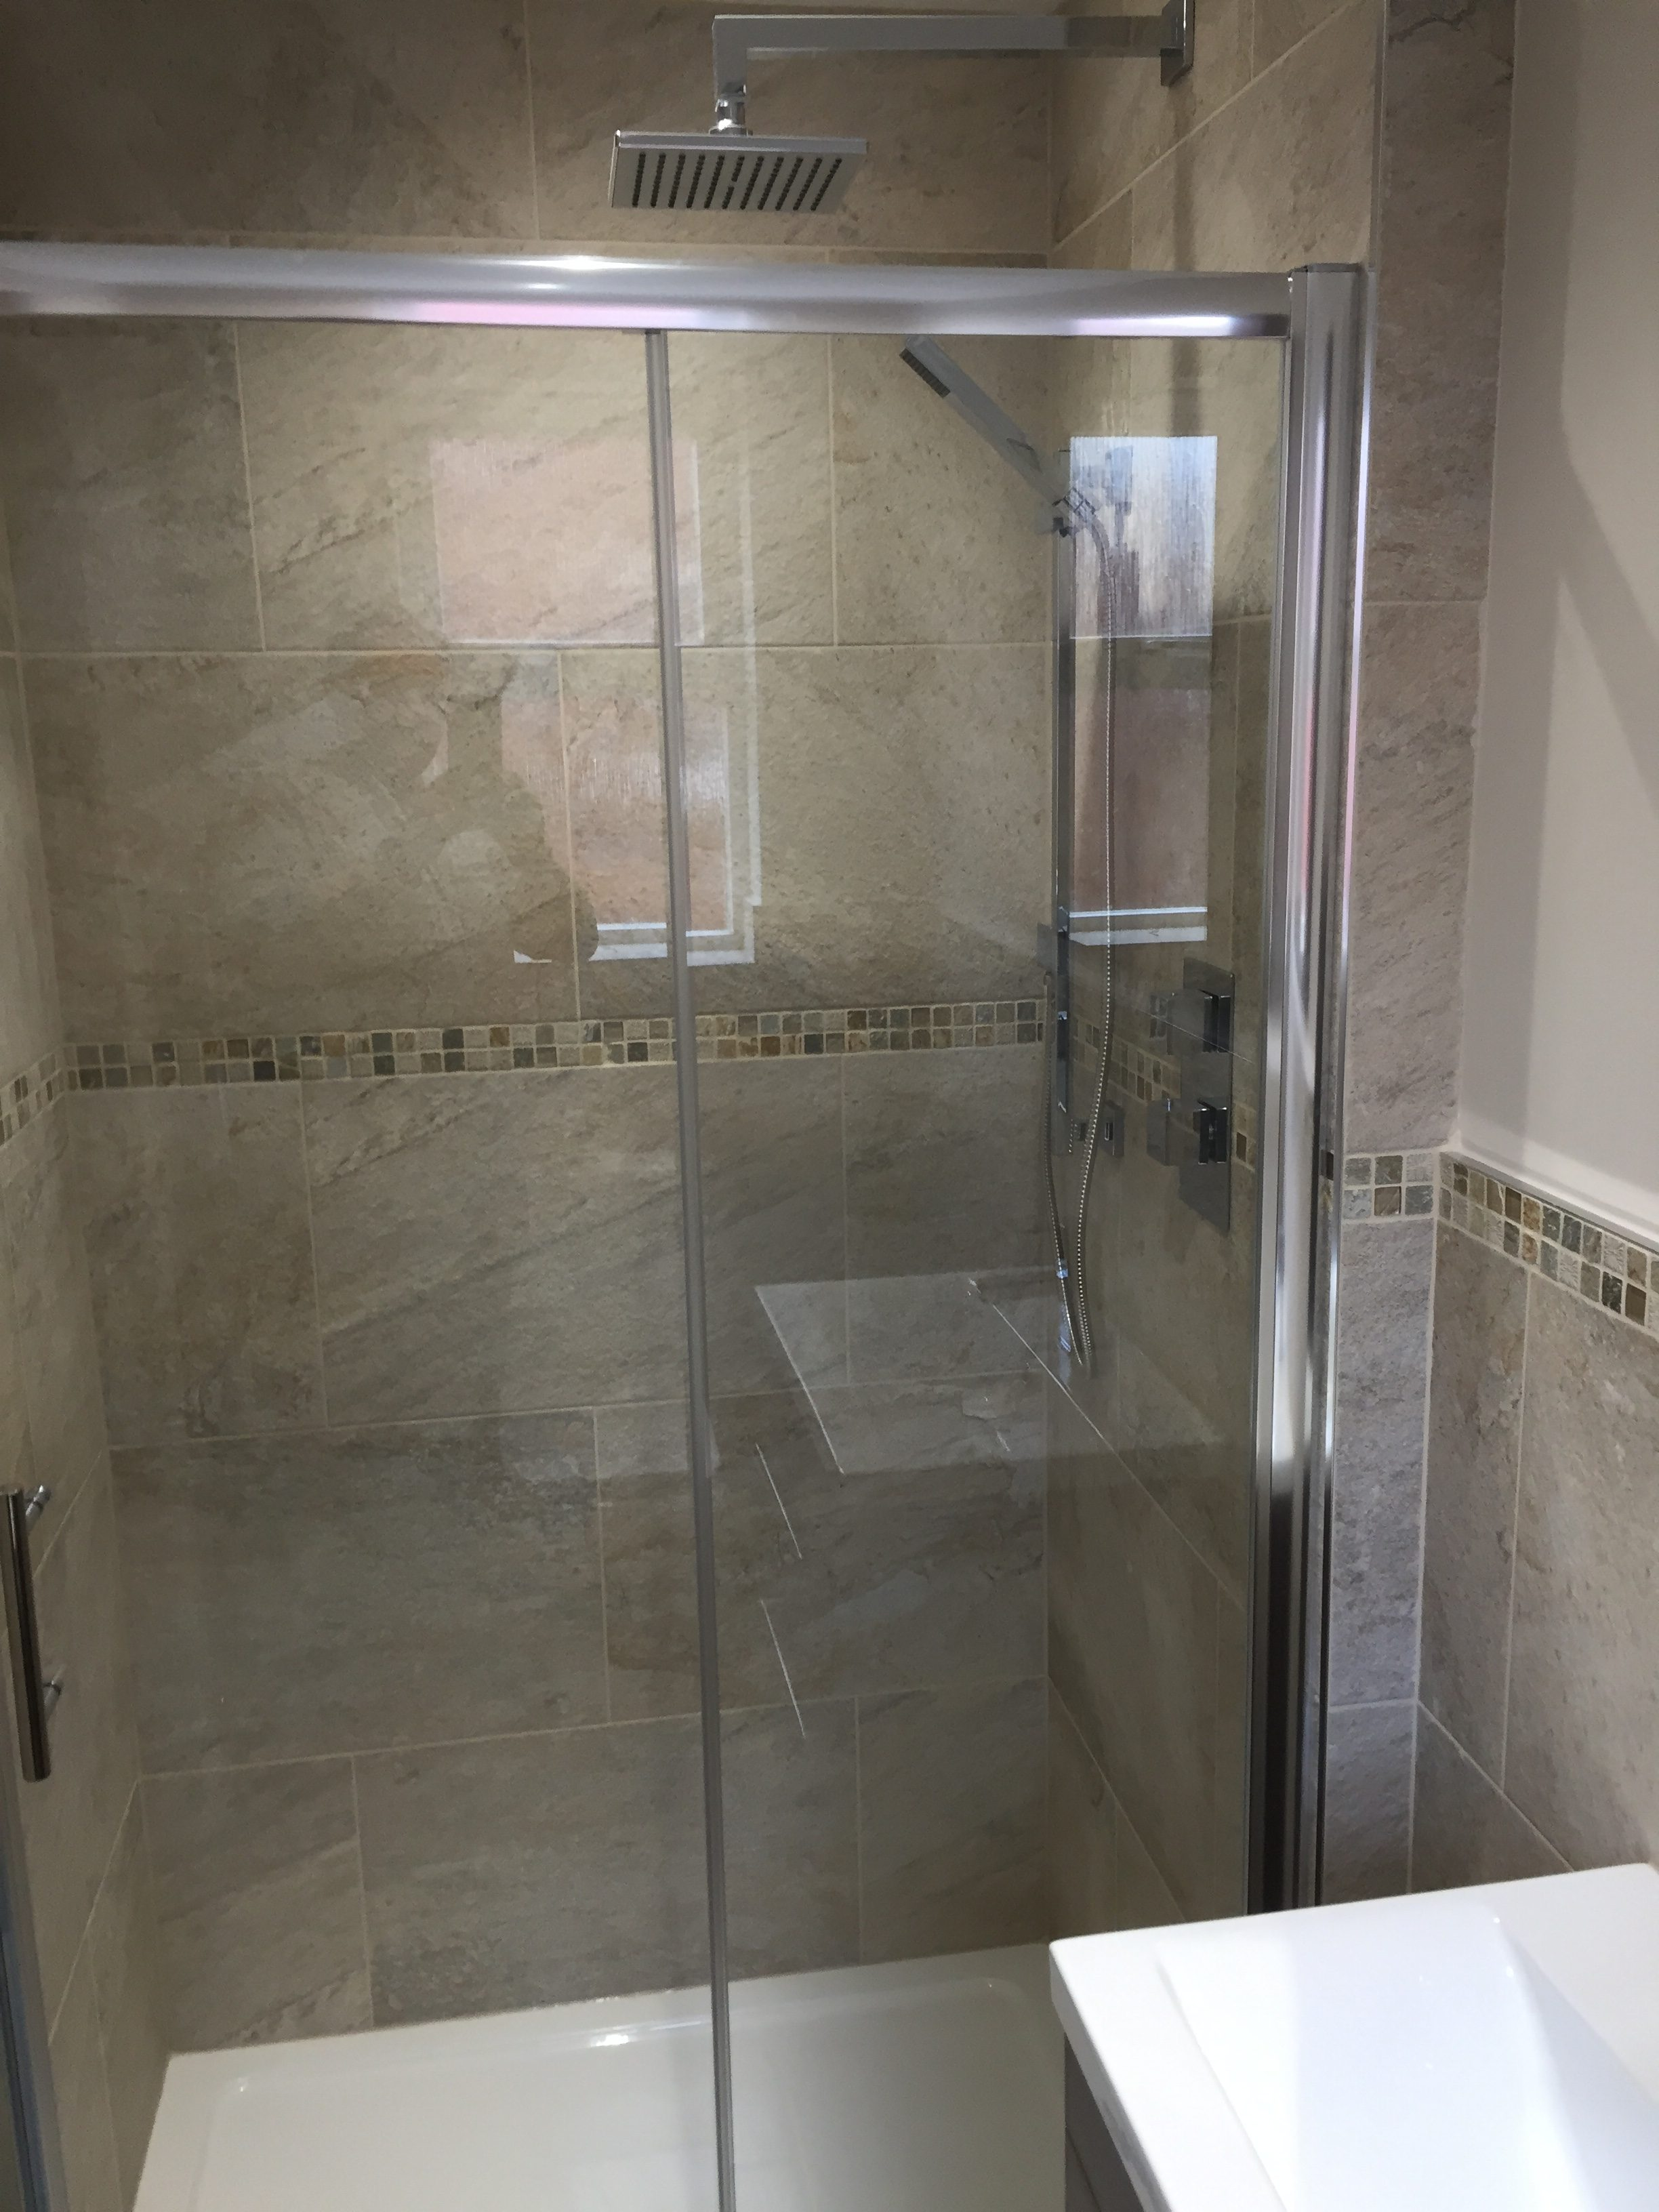 Tile work in bathrooms - The Tiling Work Has Been Completed By Graham Knight 07781 7728031 And The Job Was Managed By Adrian Lewis Joinery 07885 217024